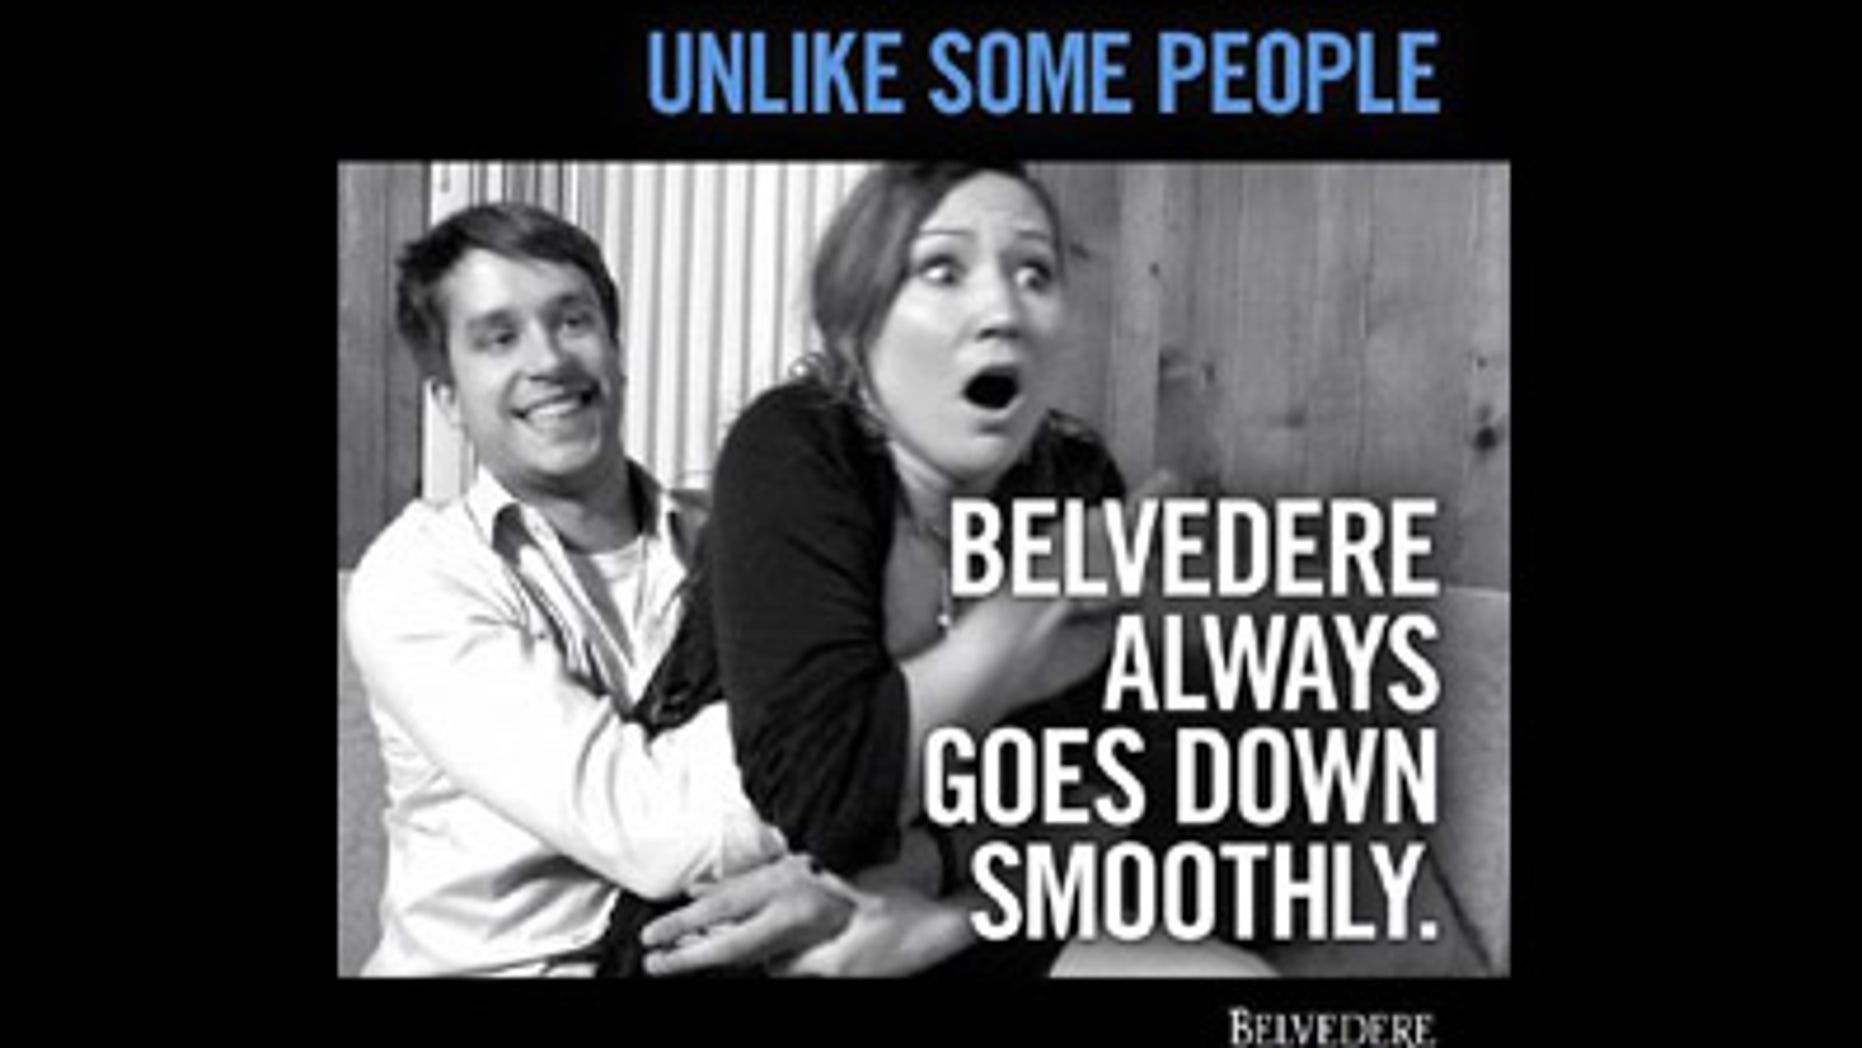 The suggestive ad caused an uproar after being posted on Belvedere Vodka's Twitter and Facebook pages on Friday